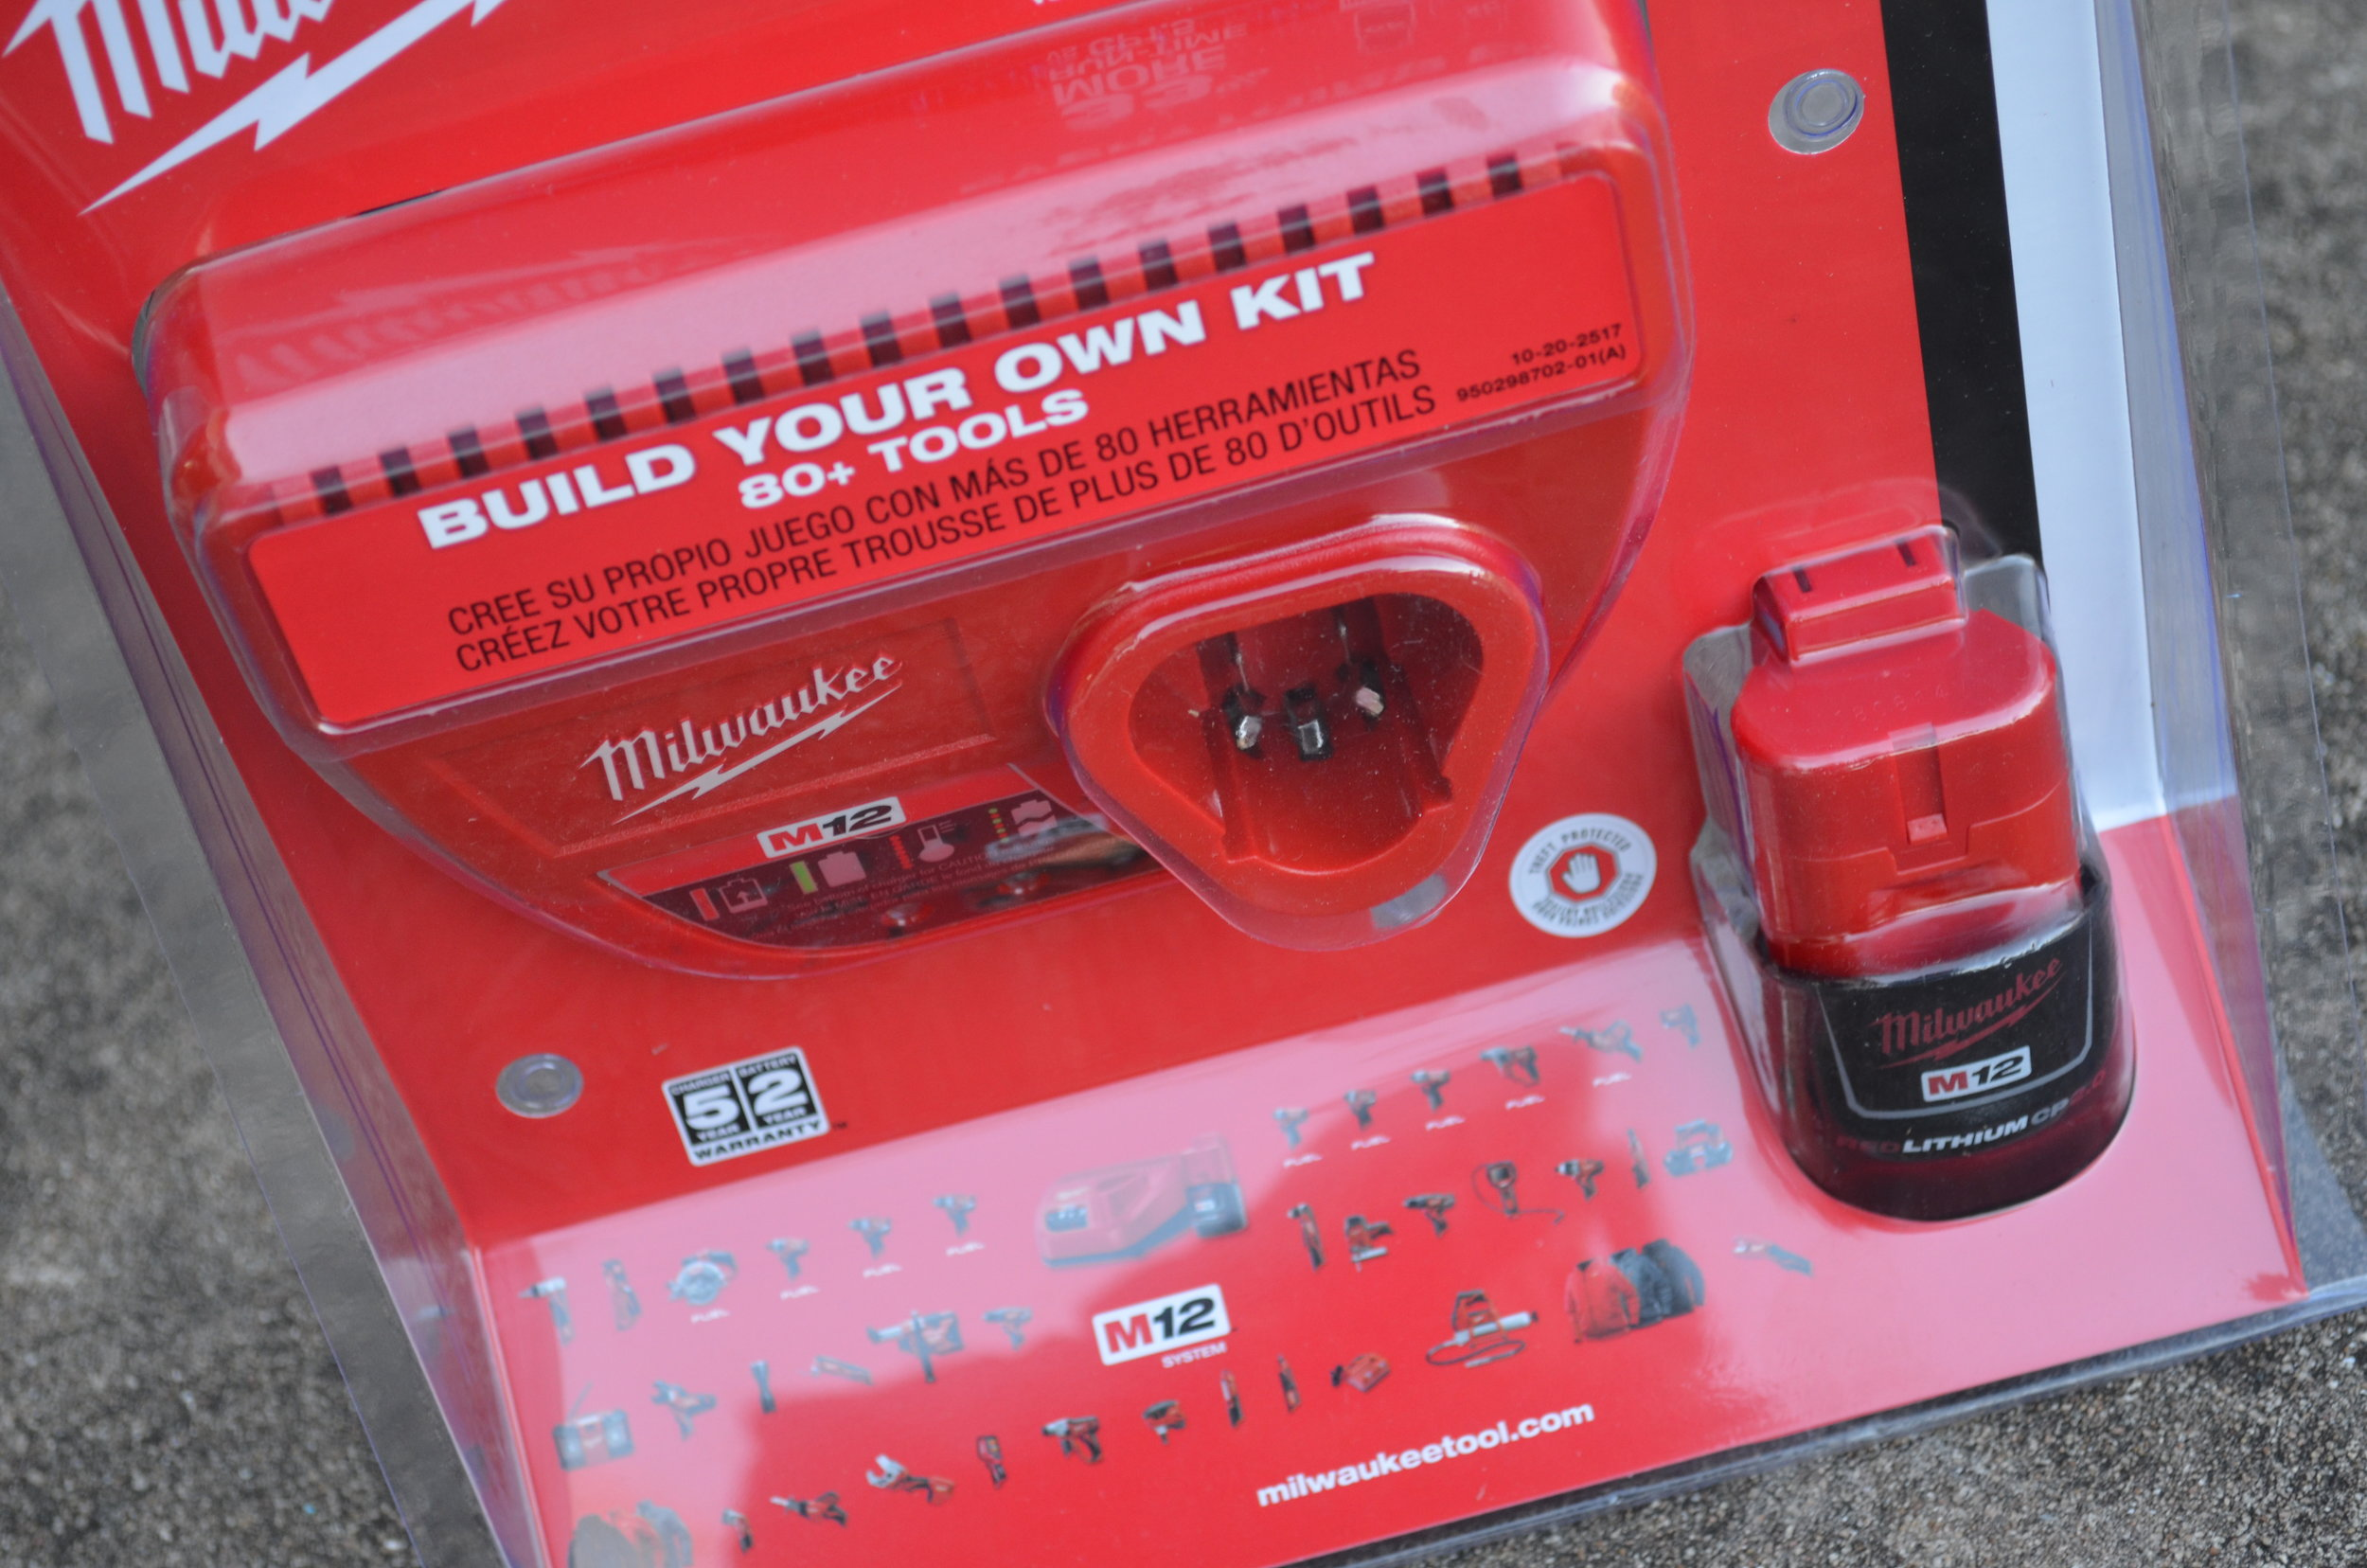 milwaukee-m12-battery-pack-and-charger